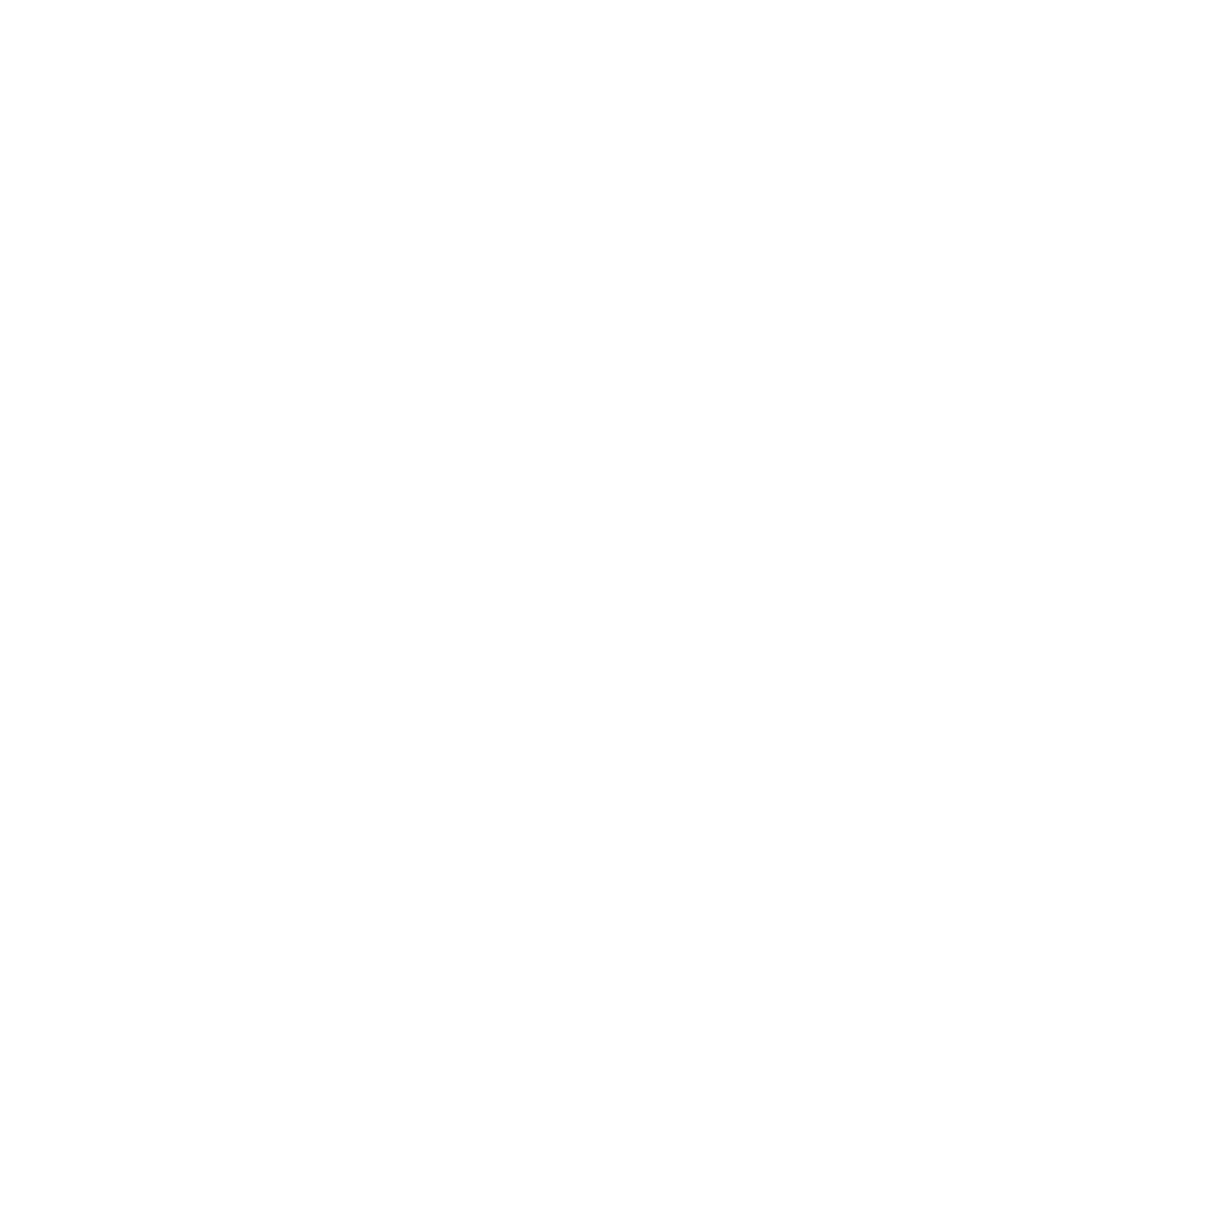 Seven years running in the Inc. 5000 list